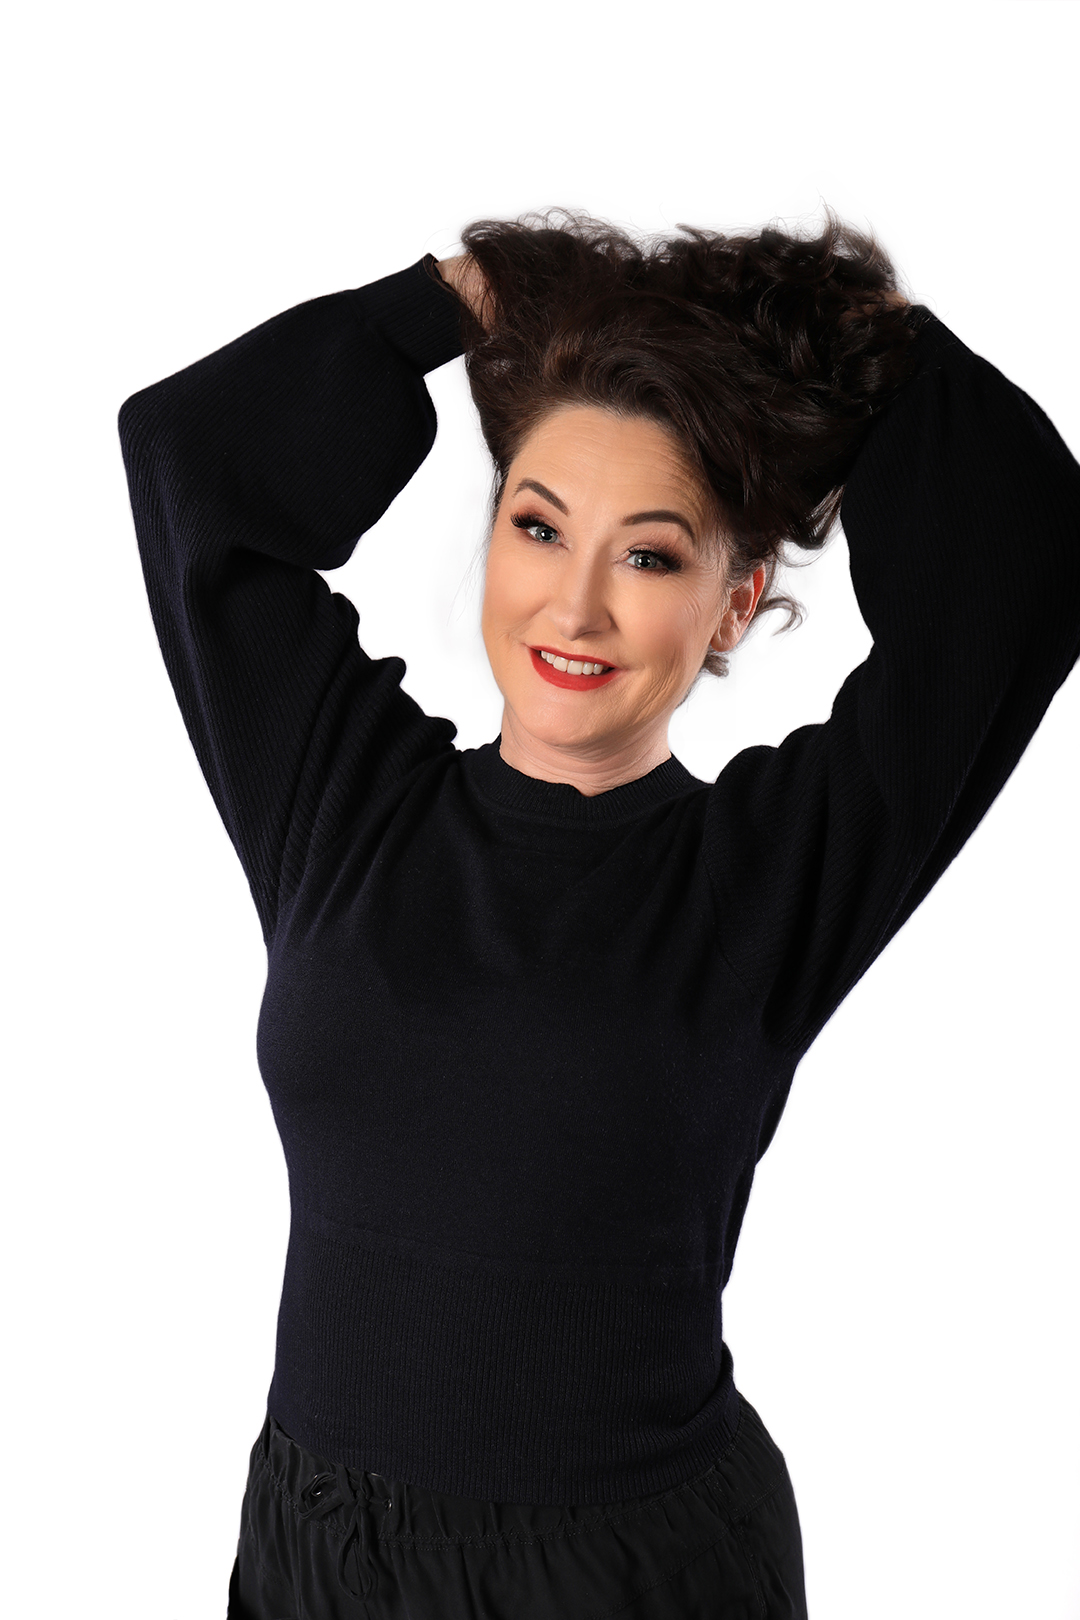 Fiona O'Loughlin - Comedy Royalty, Fiona O'Loughlin is one of the most in demand comedians in this country.